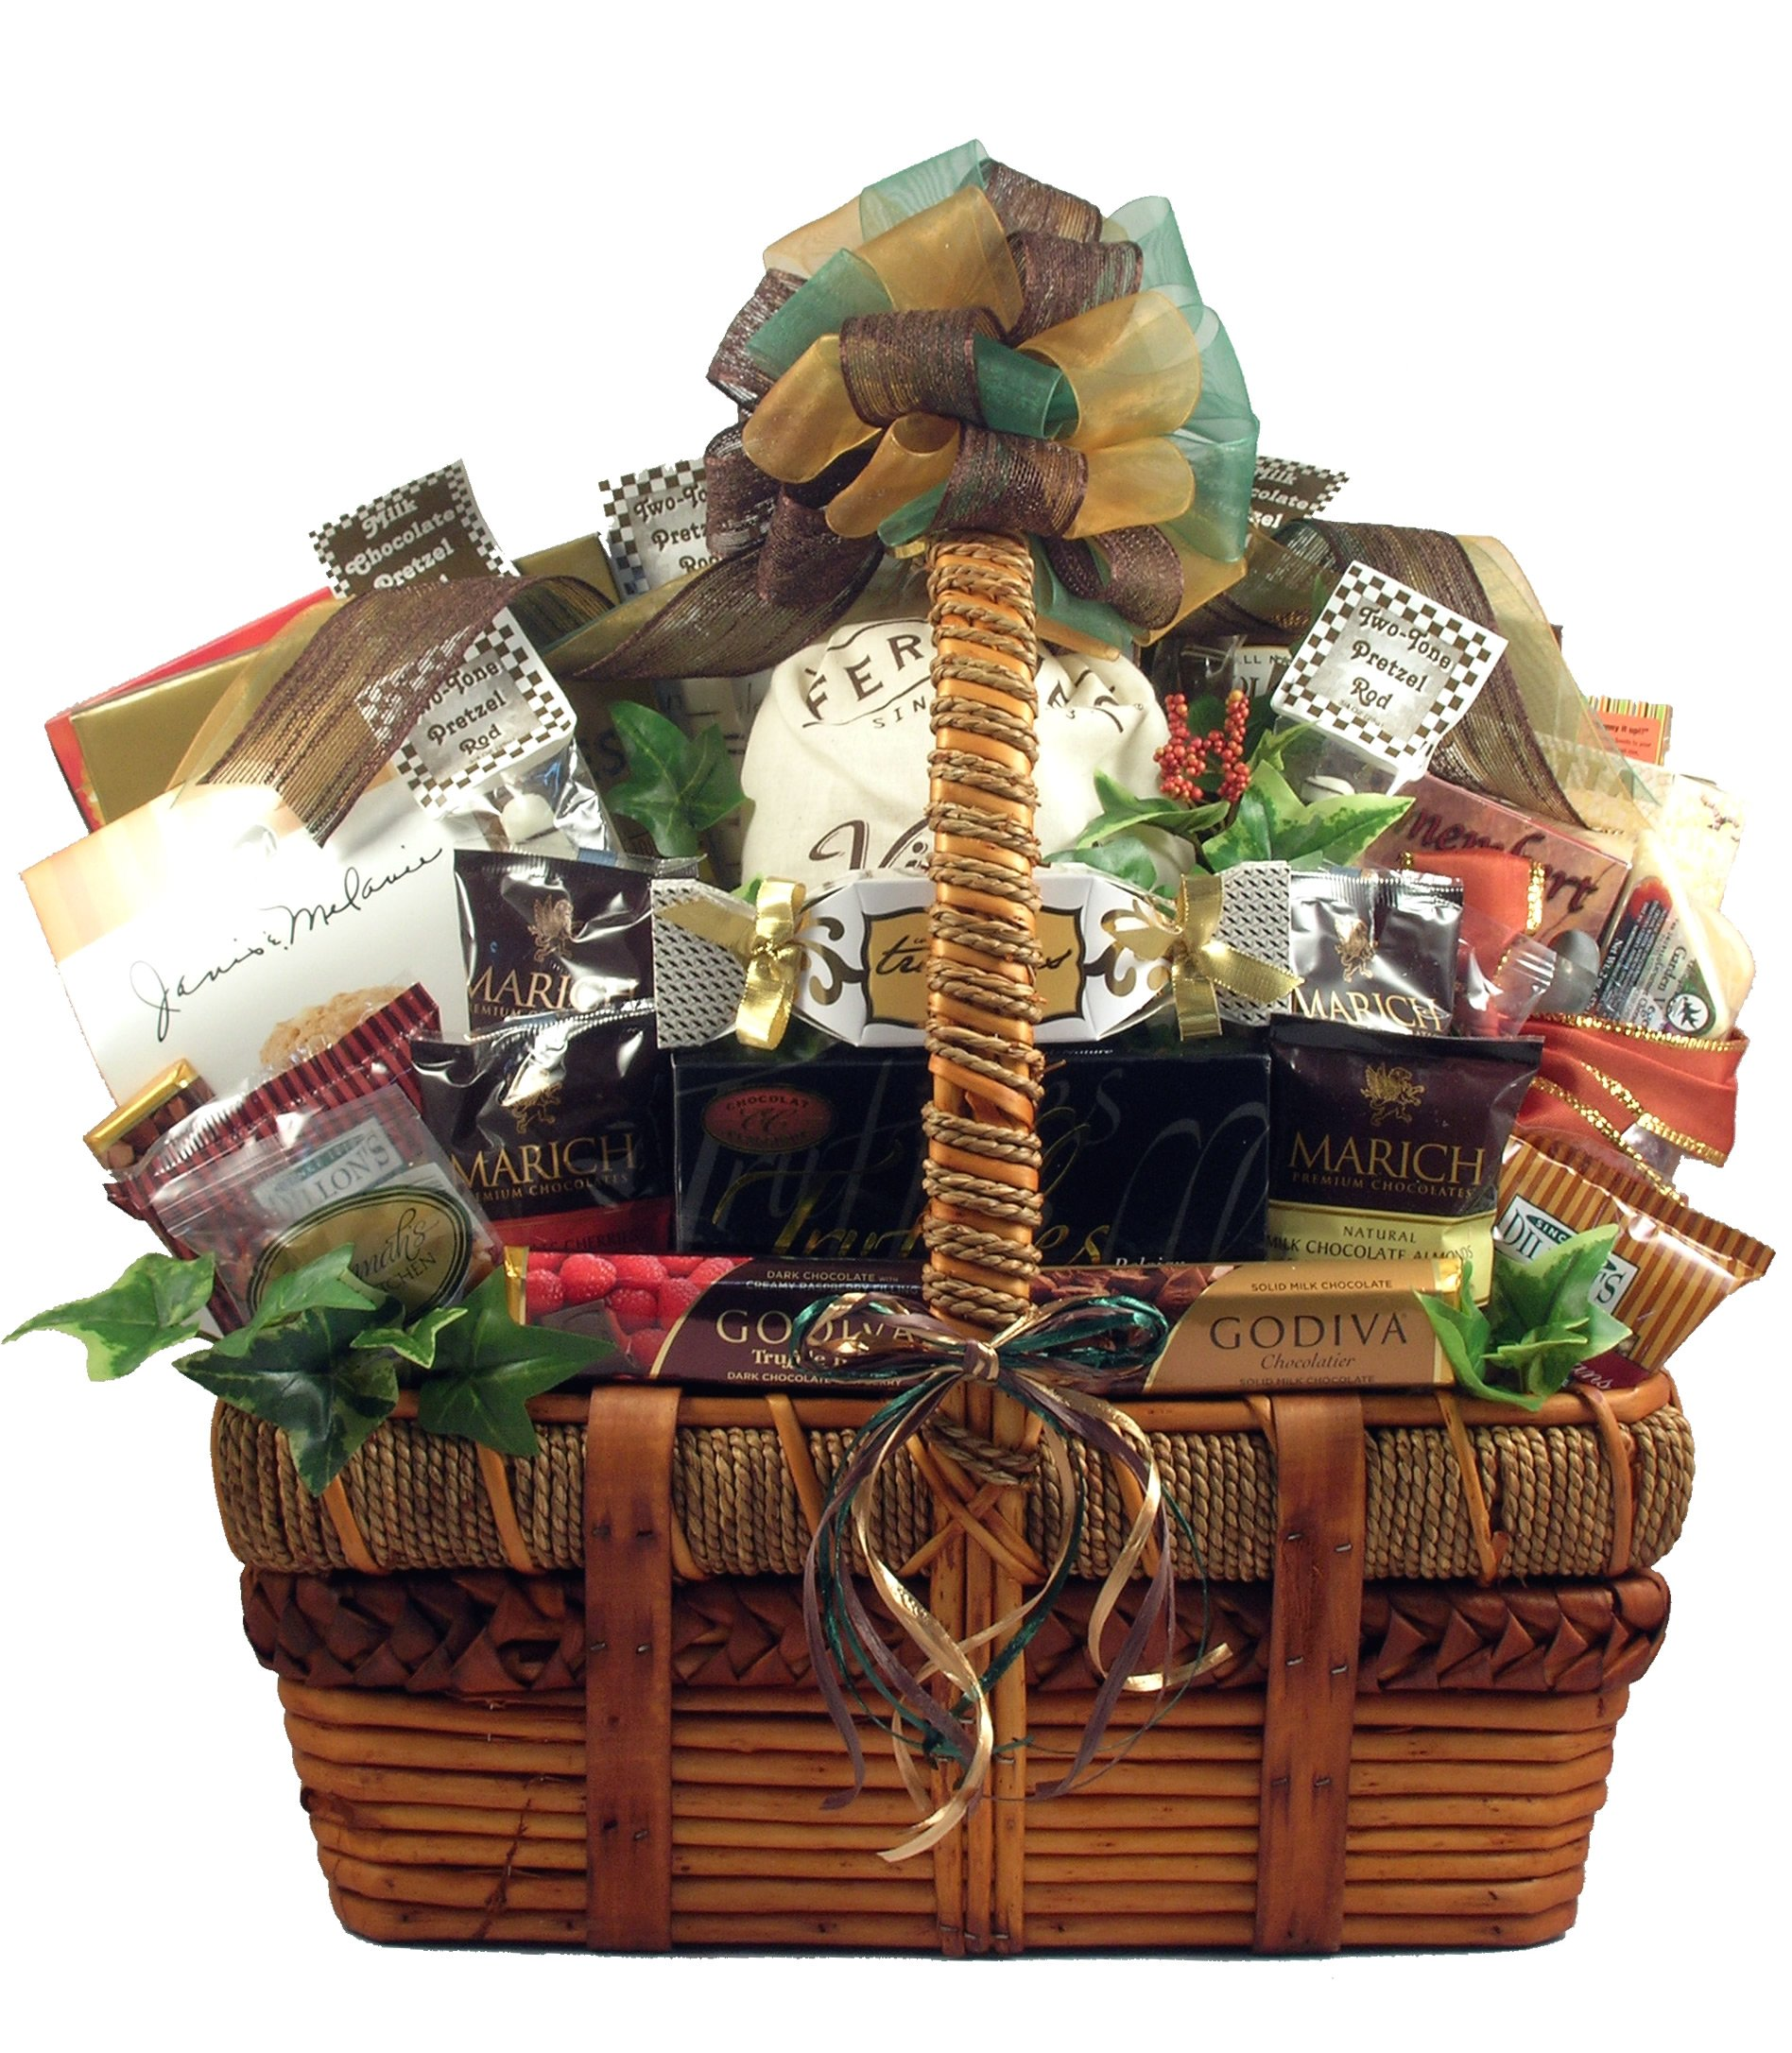 The Ultimate Gourmet, Large Gift Basket For A Group Or Family - Loaded with Sweet Treats & Savory Snacks, 14 lb by Gift Basket Village